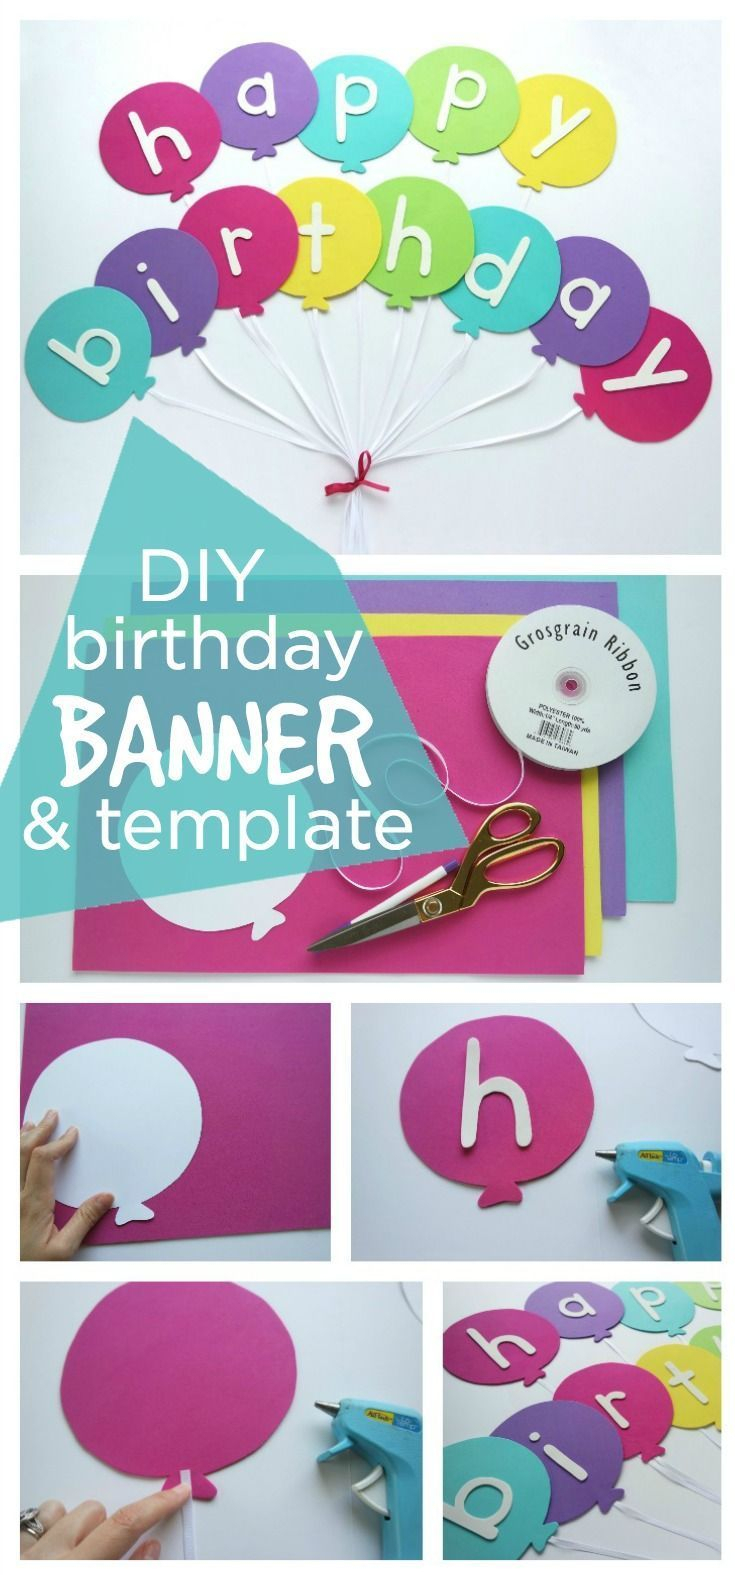 Happy Birthday Banner Diy Template | Diy Party Ideas  Group In Diy Party Banner Template